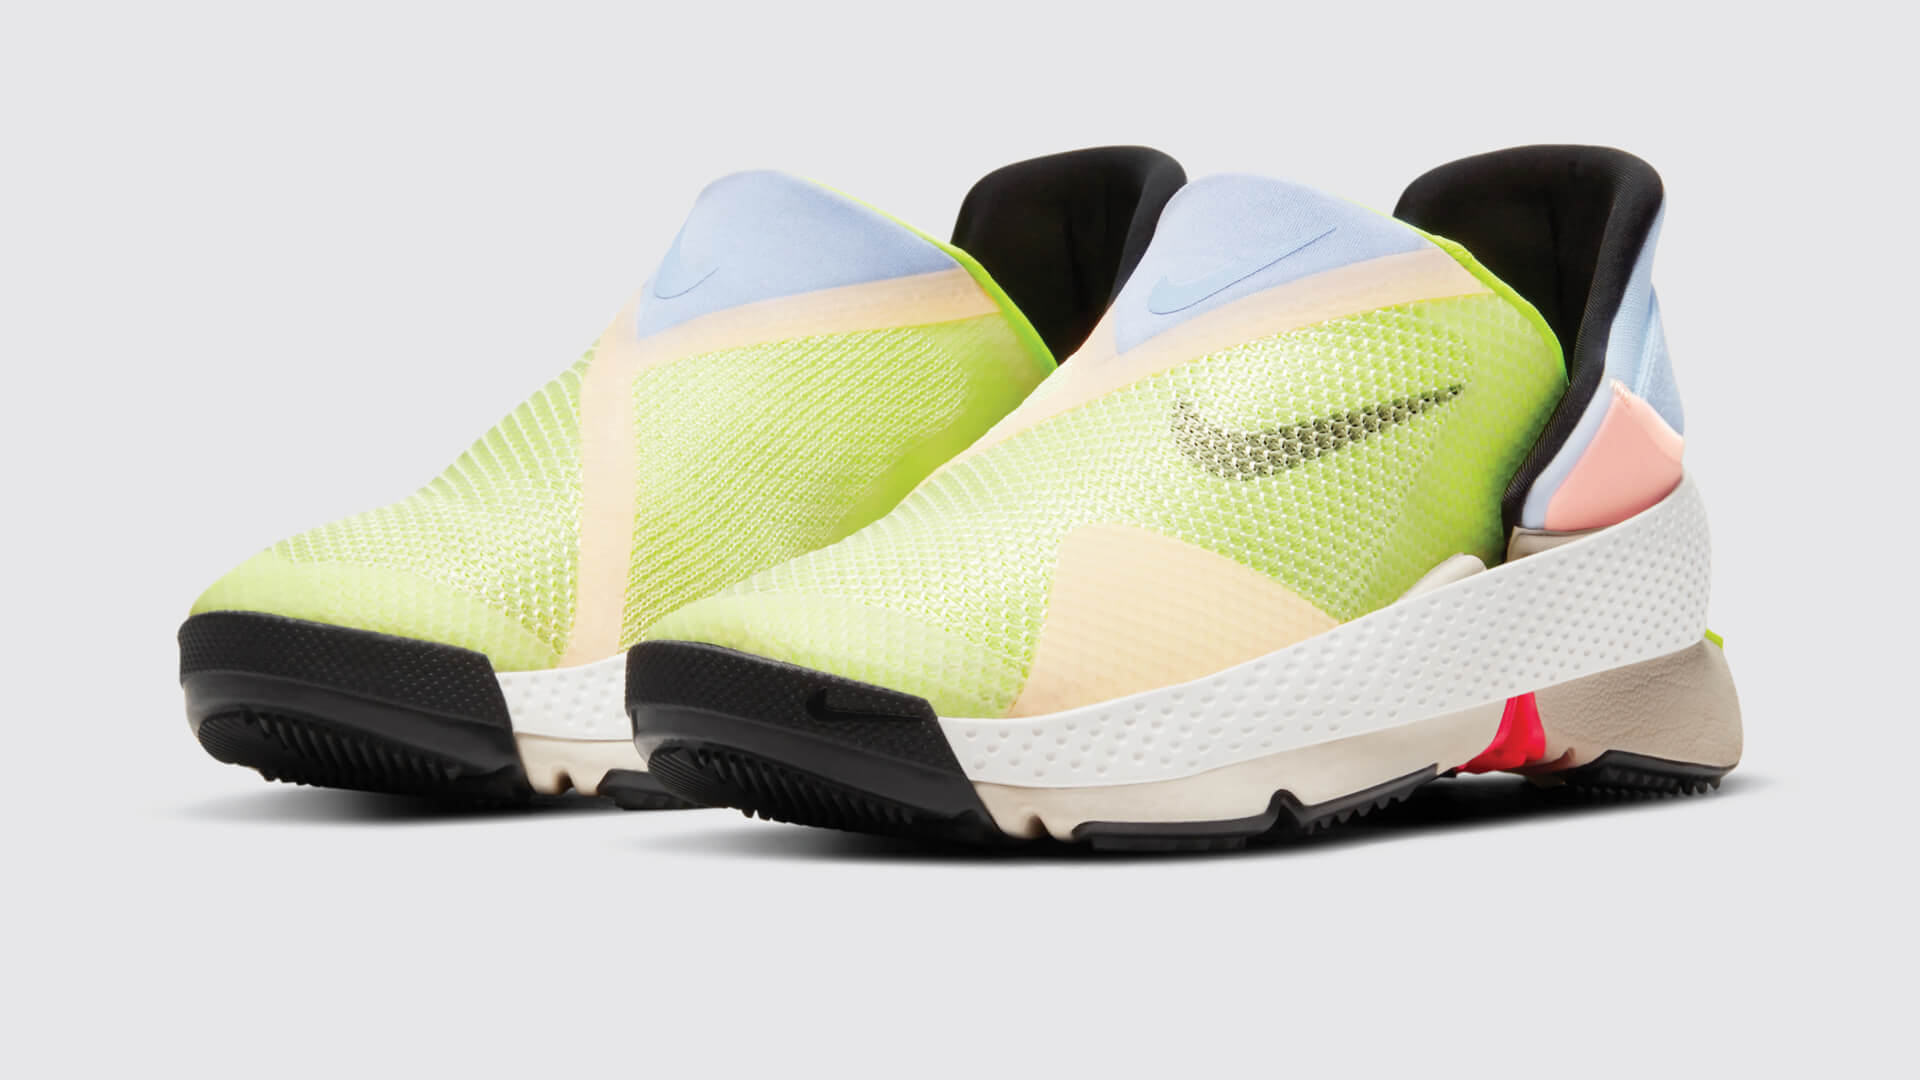 Nike's hands-free GO FlyEase sneaker is 'easy-on, easy-off'